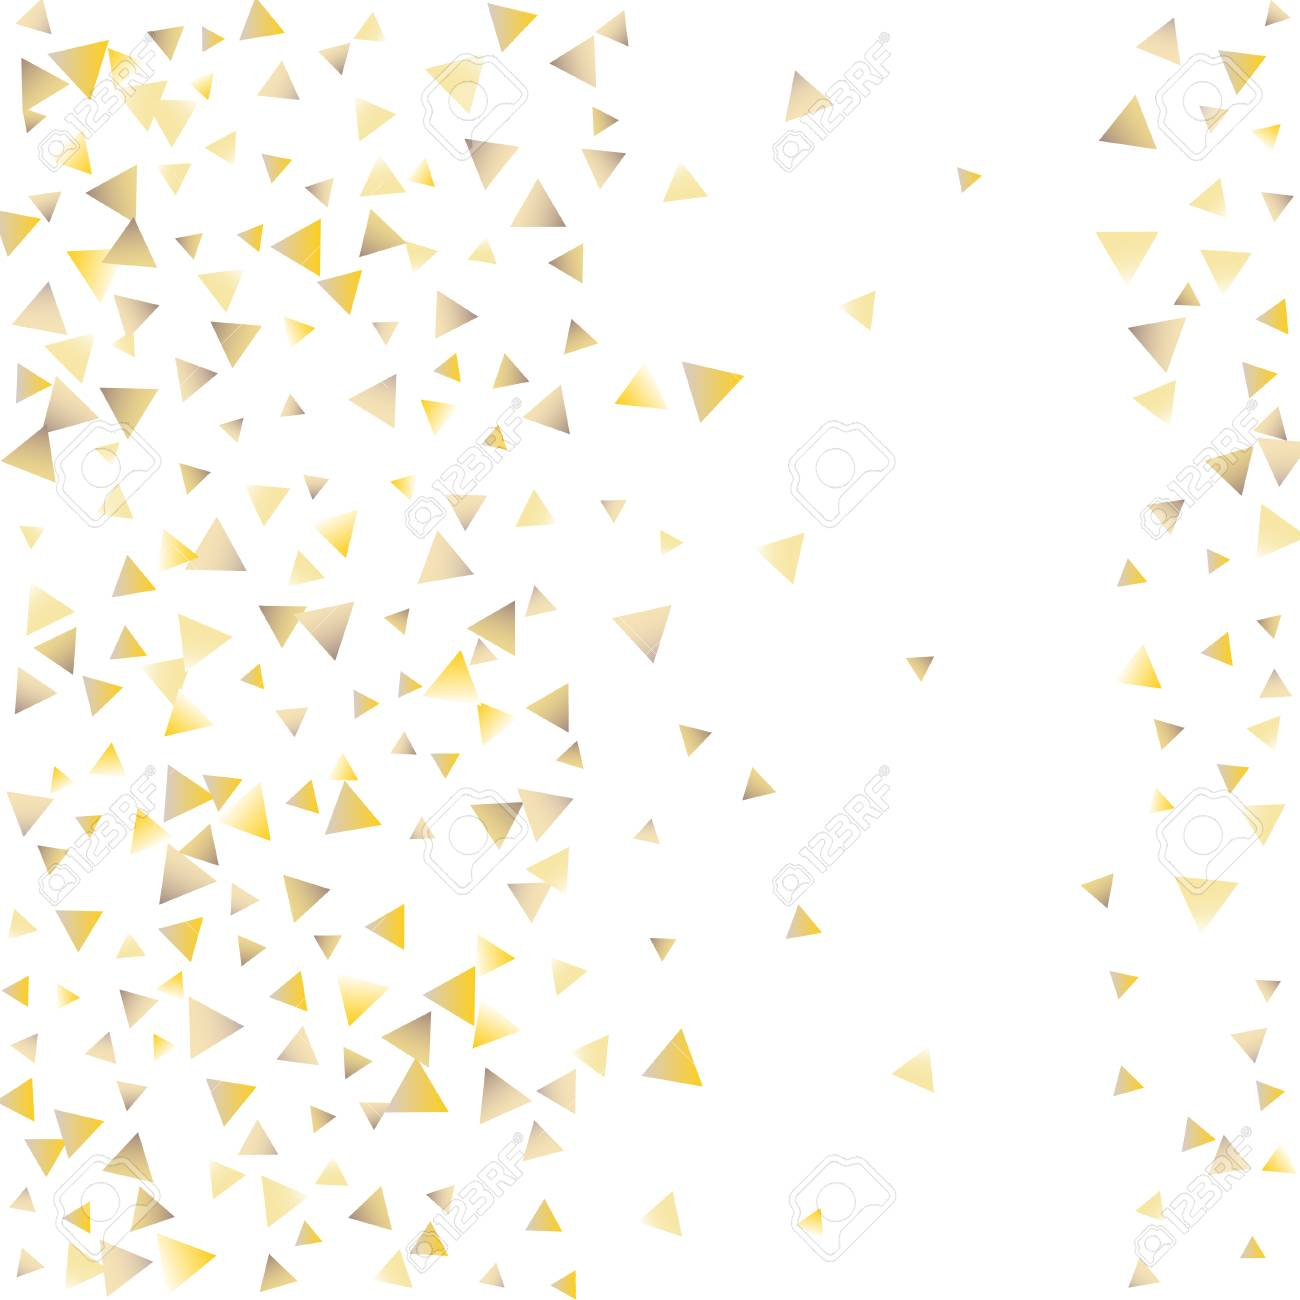 Festive greeting card with gold falling confetti triangles on